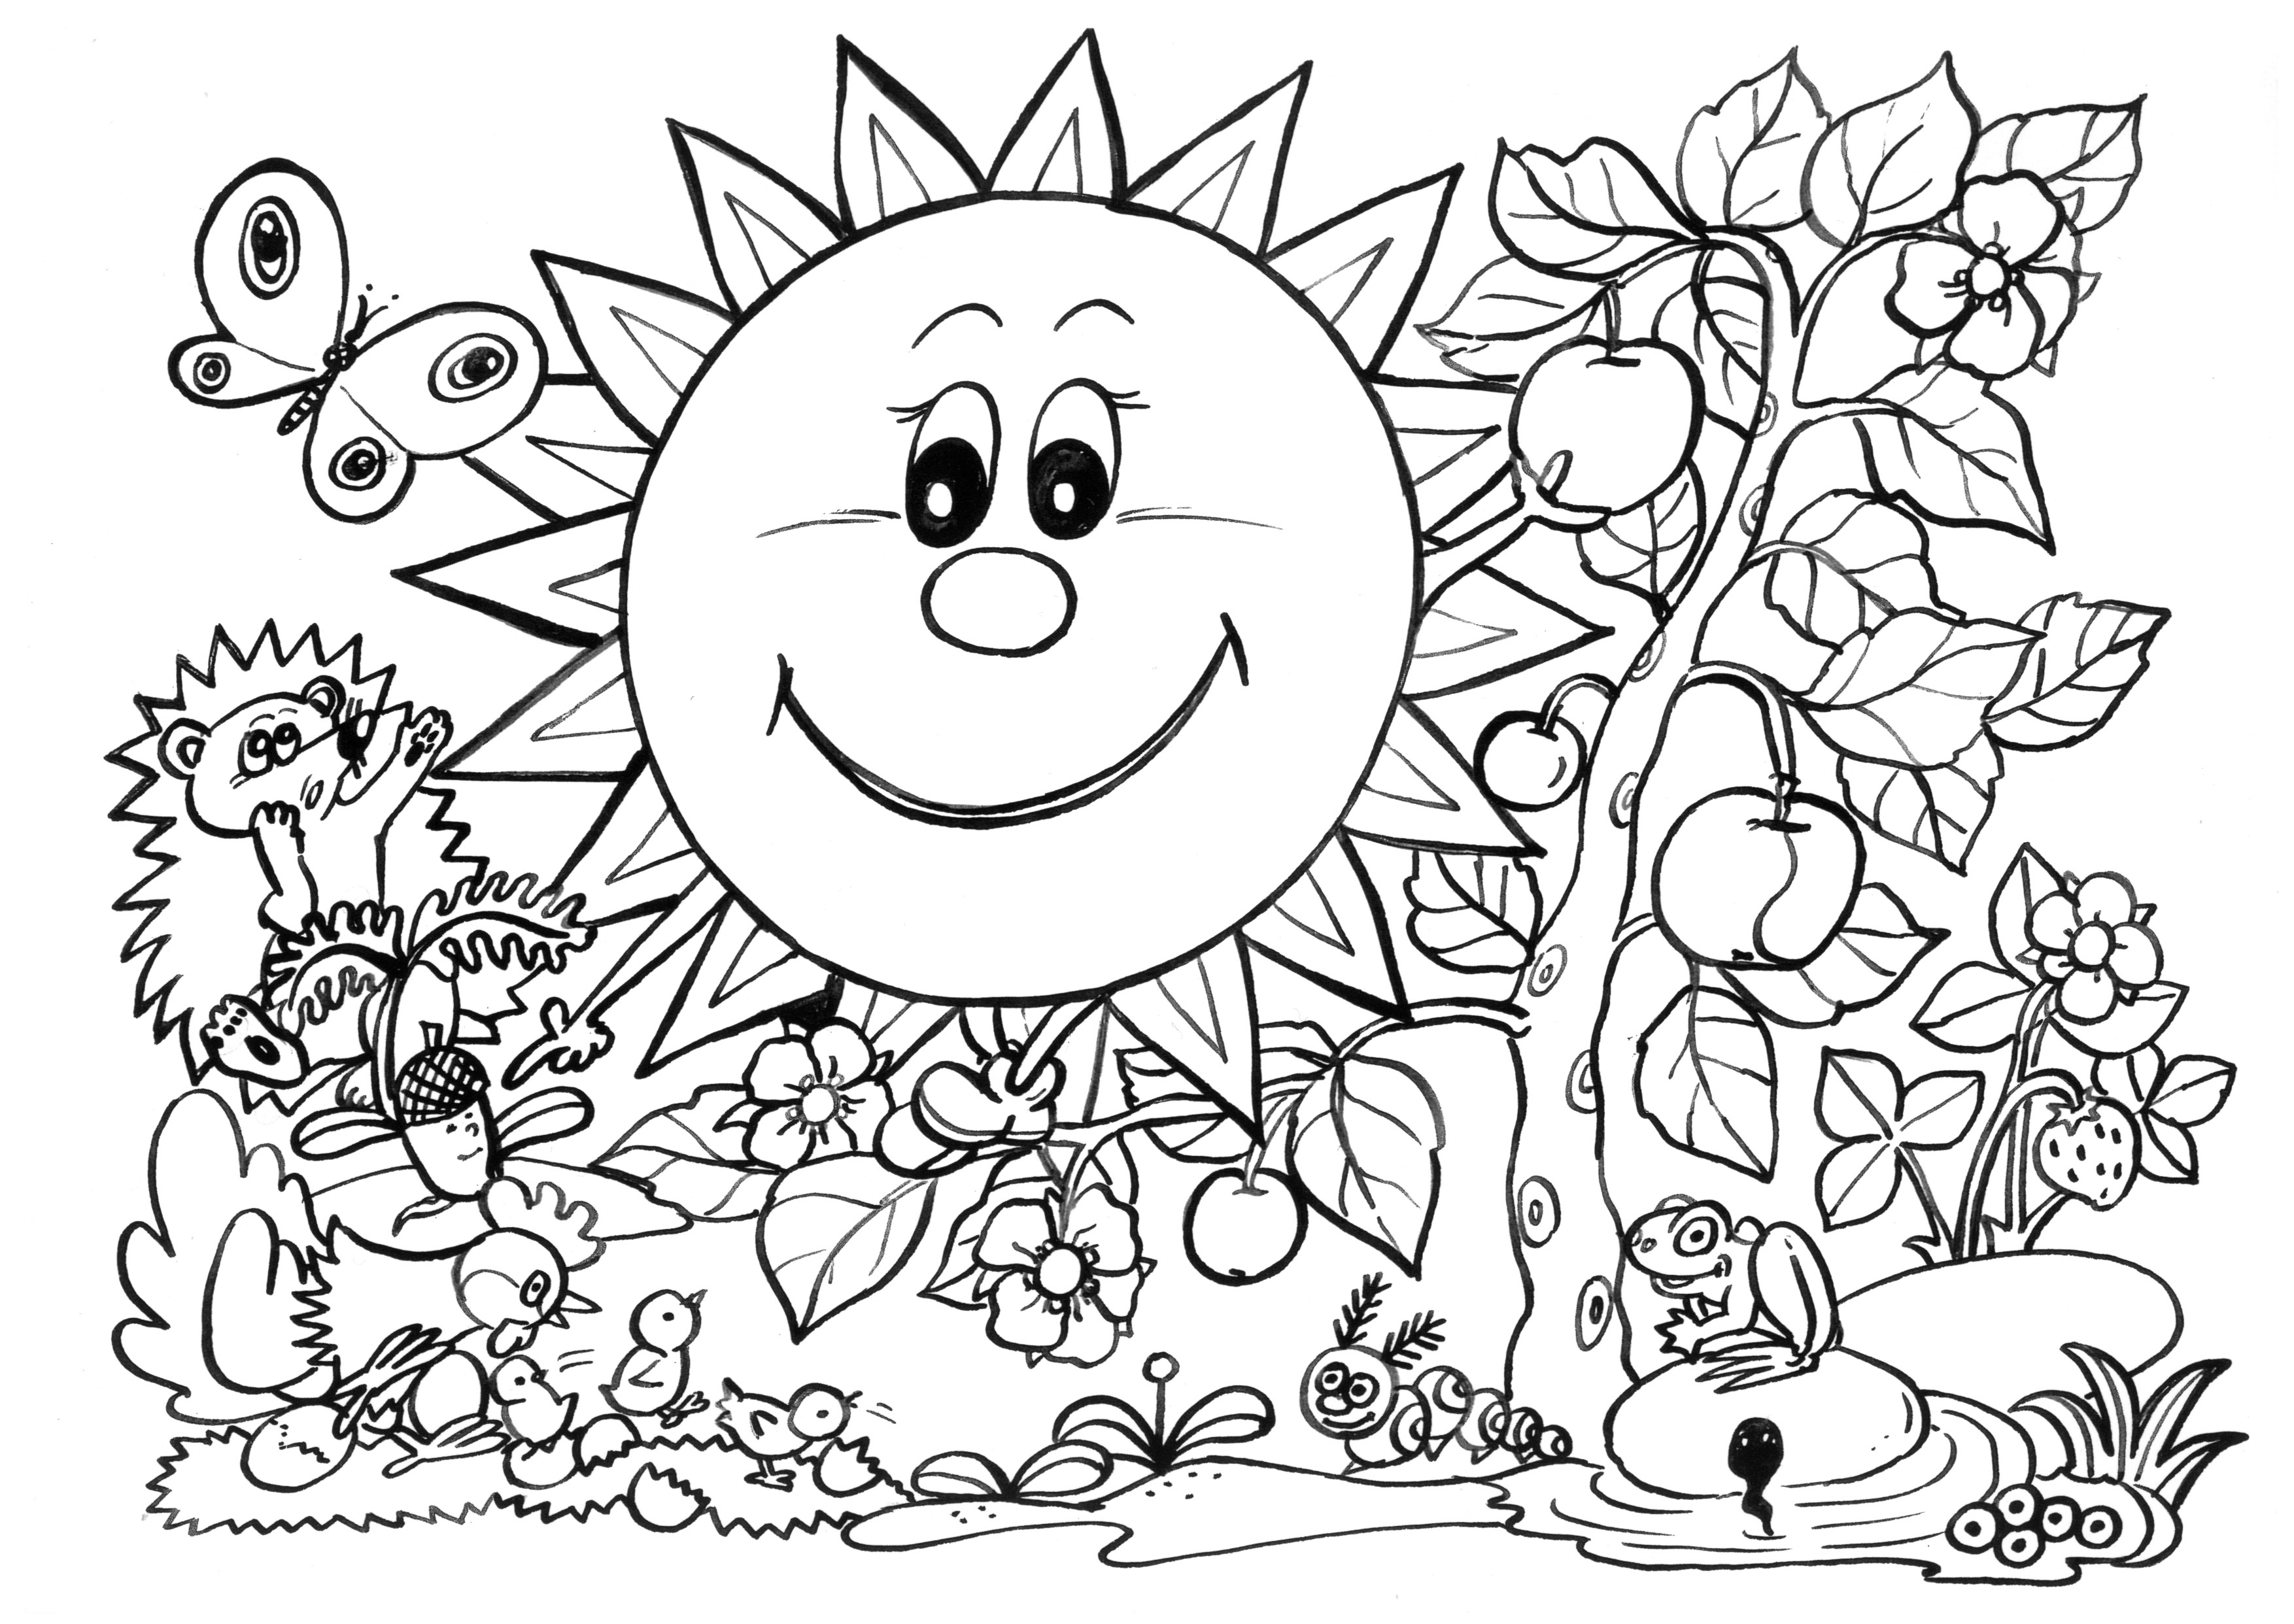 Spring Coloring Pages Sunny Garden Free Printable Coloring Pages For Kids Colouring Pages